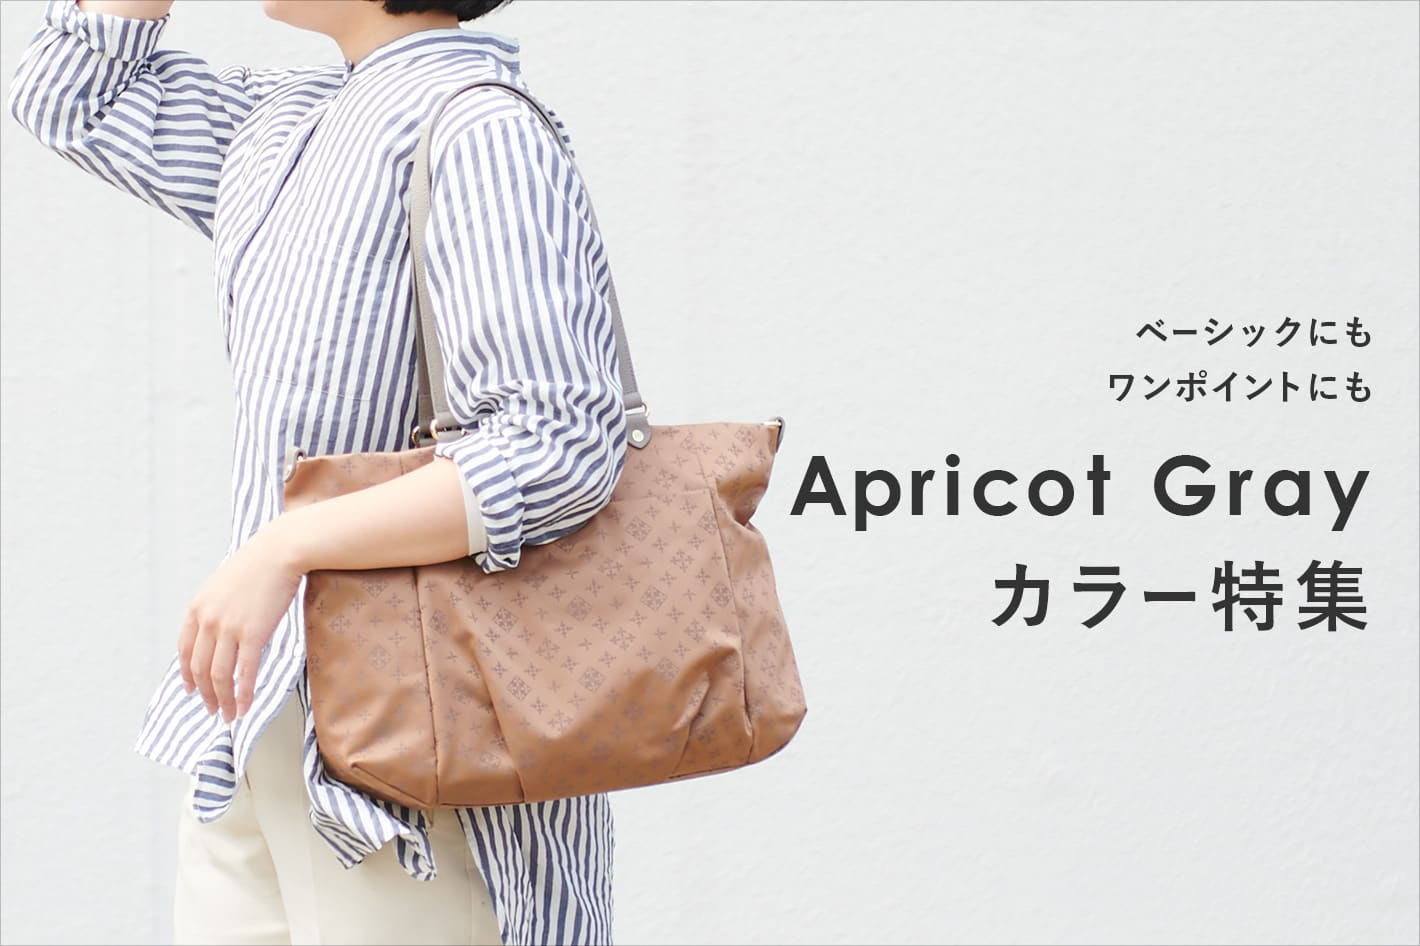 russet ◆Recommend◆Apricot Grayカラー特集